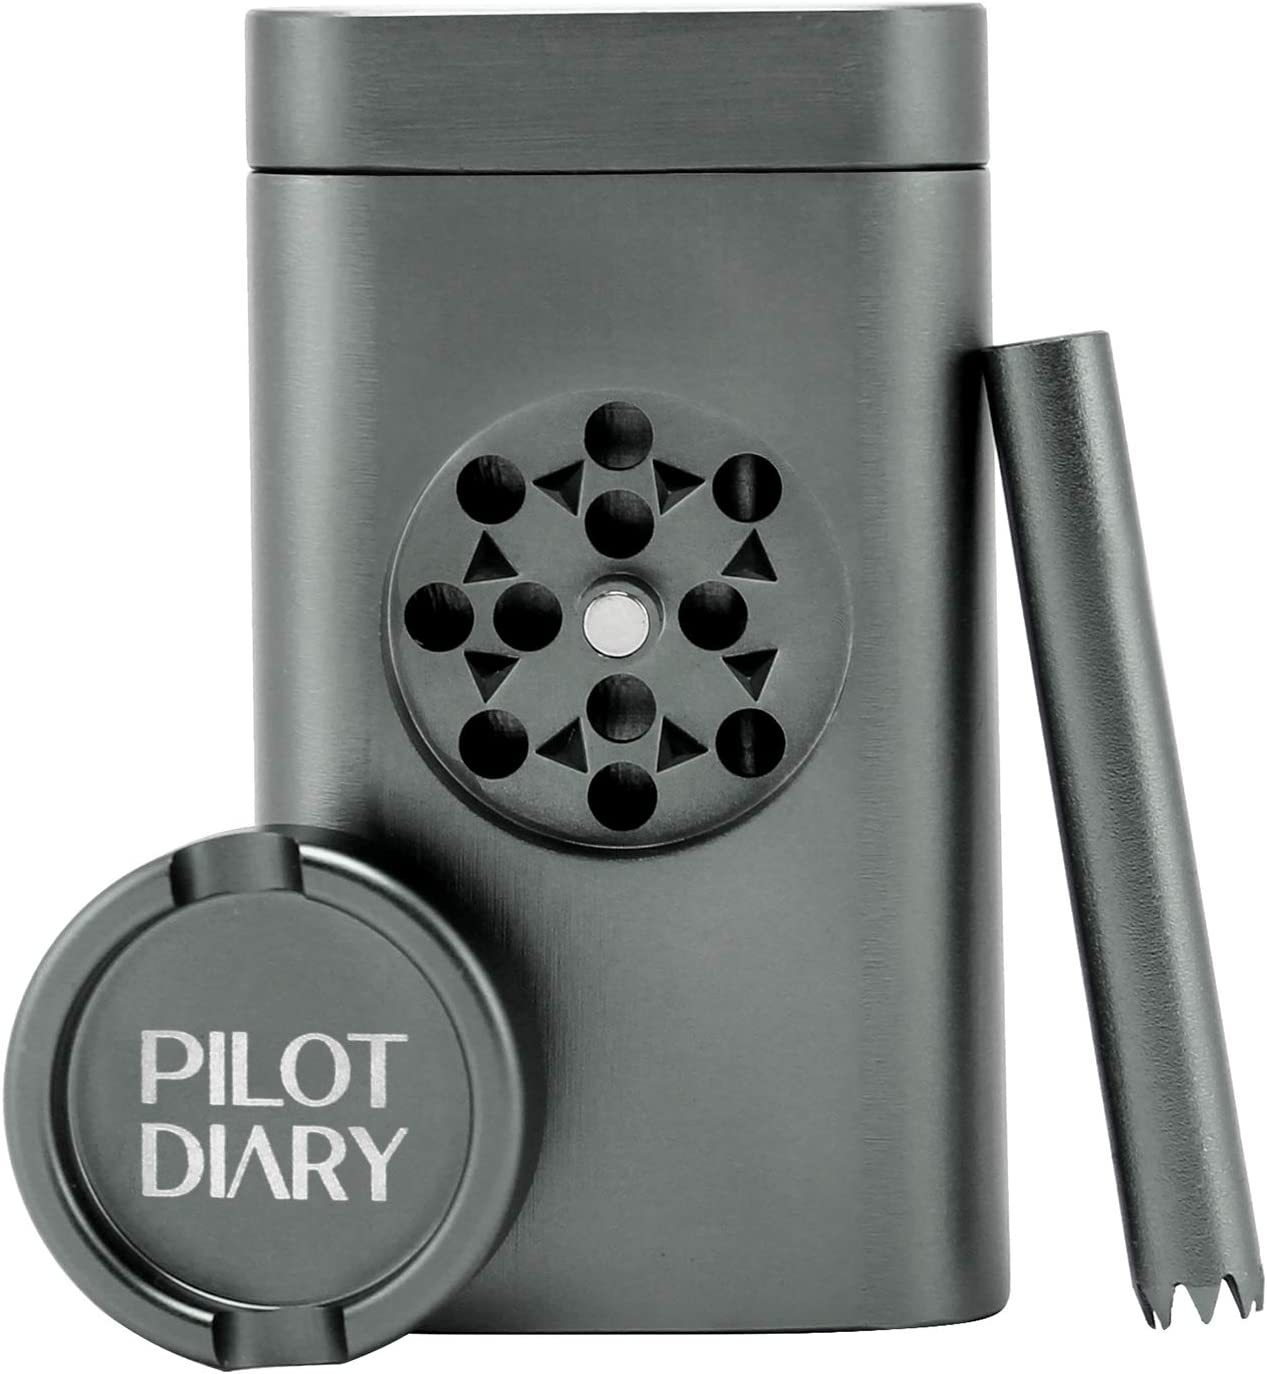 PILOTDIARY Portable Storage Box Container and Grinder with Large Capacity Magnetic Lid Design Black